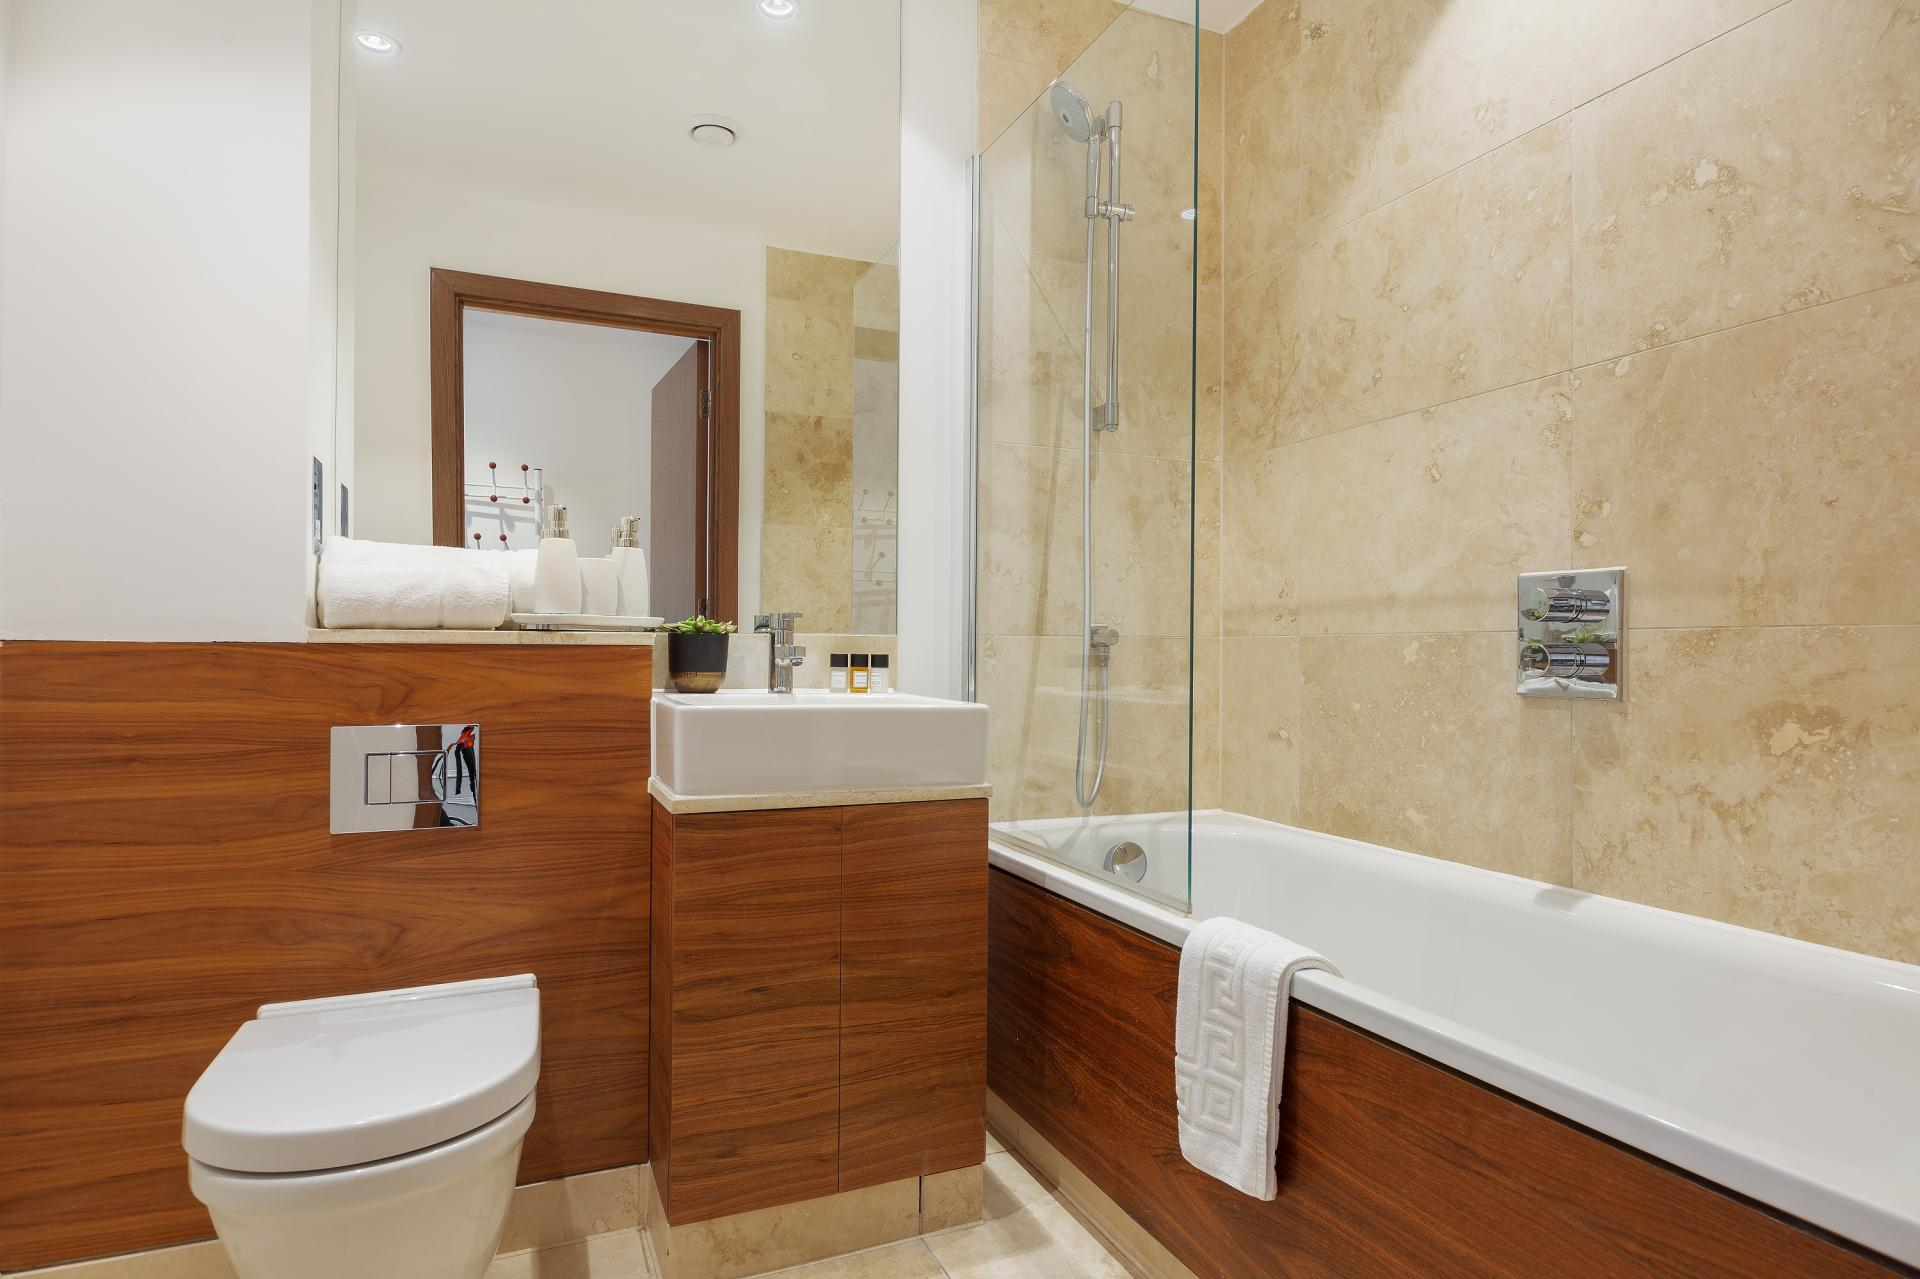 Bathroom at Shoreditch Square Apartments - Citybase Apartments